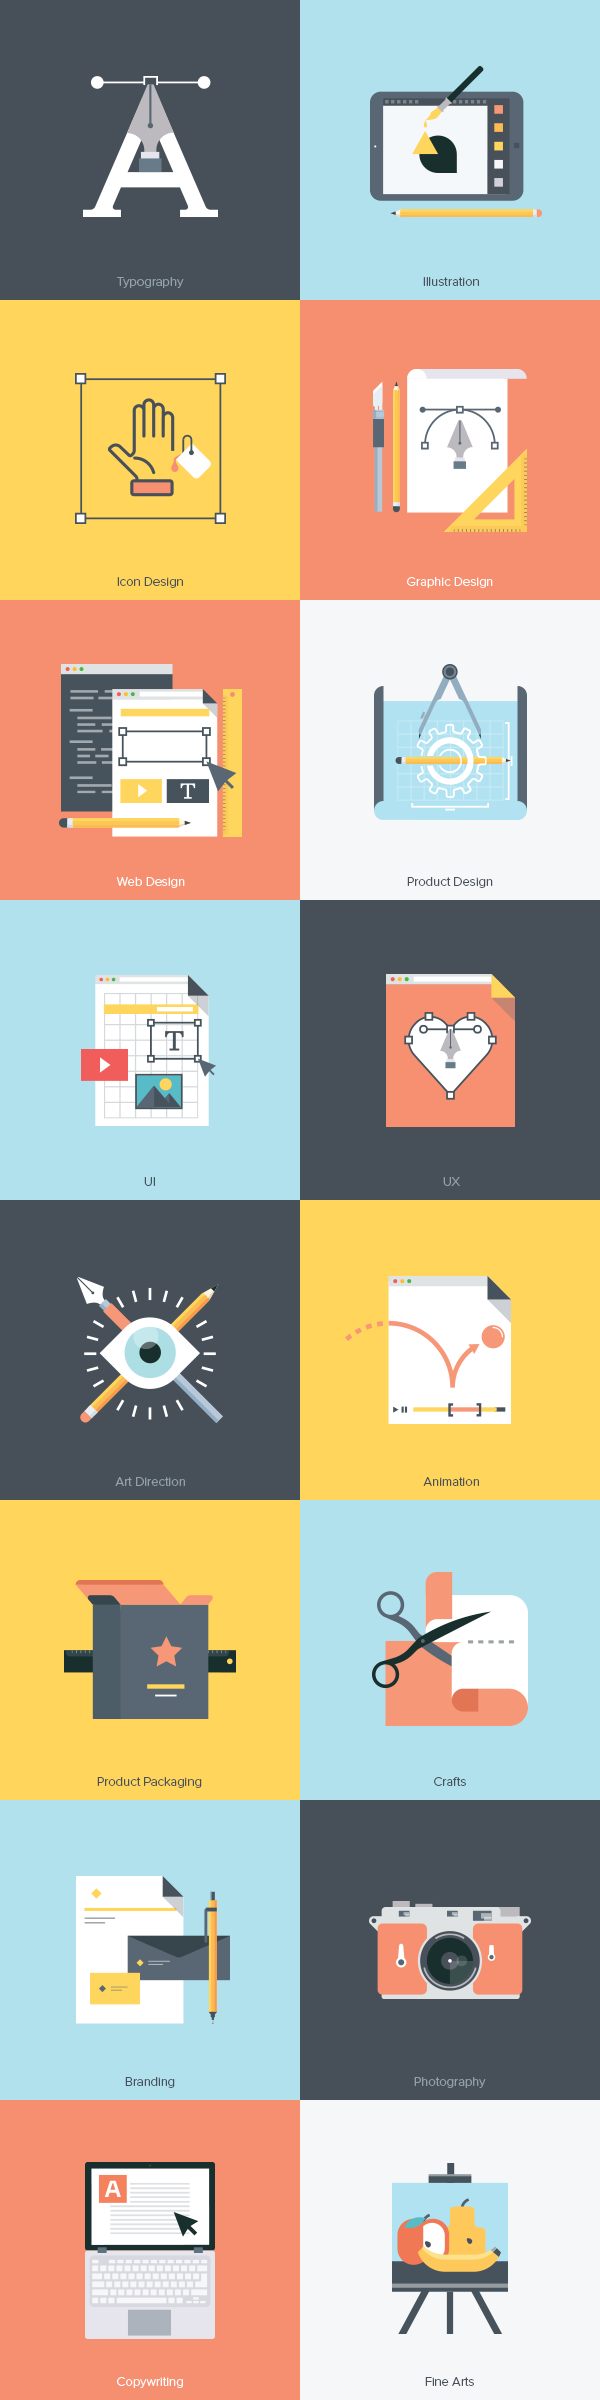 Iconspictograms Fullyscalable Collection Commercial Inventory Addition Projects Personal Original Creative Det Flat Design Icons Free Icons Icon Set